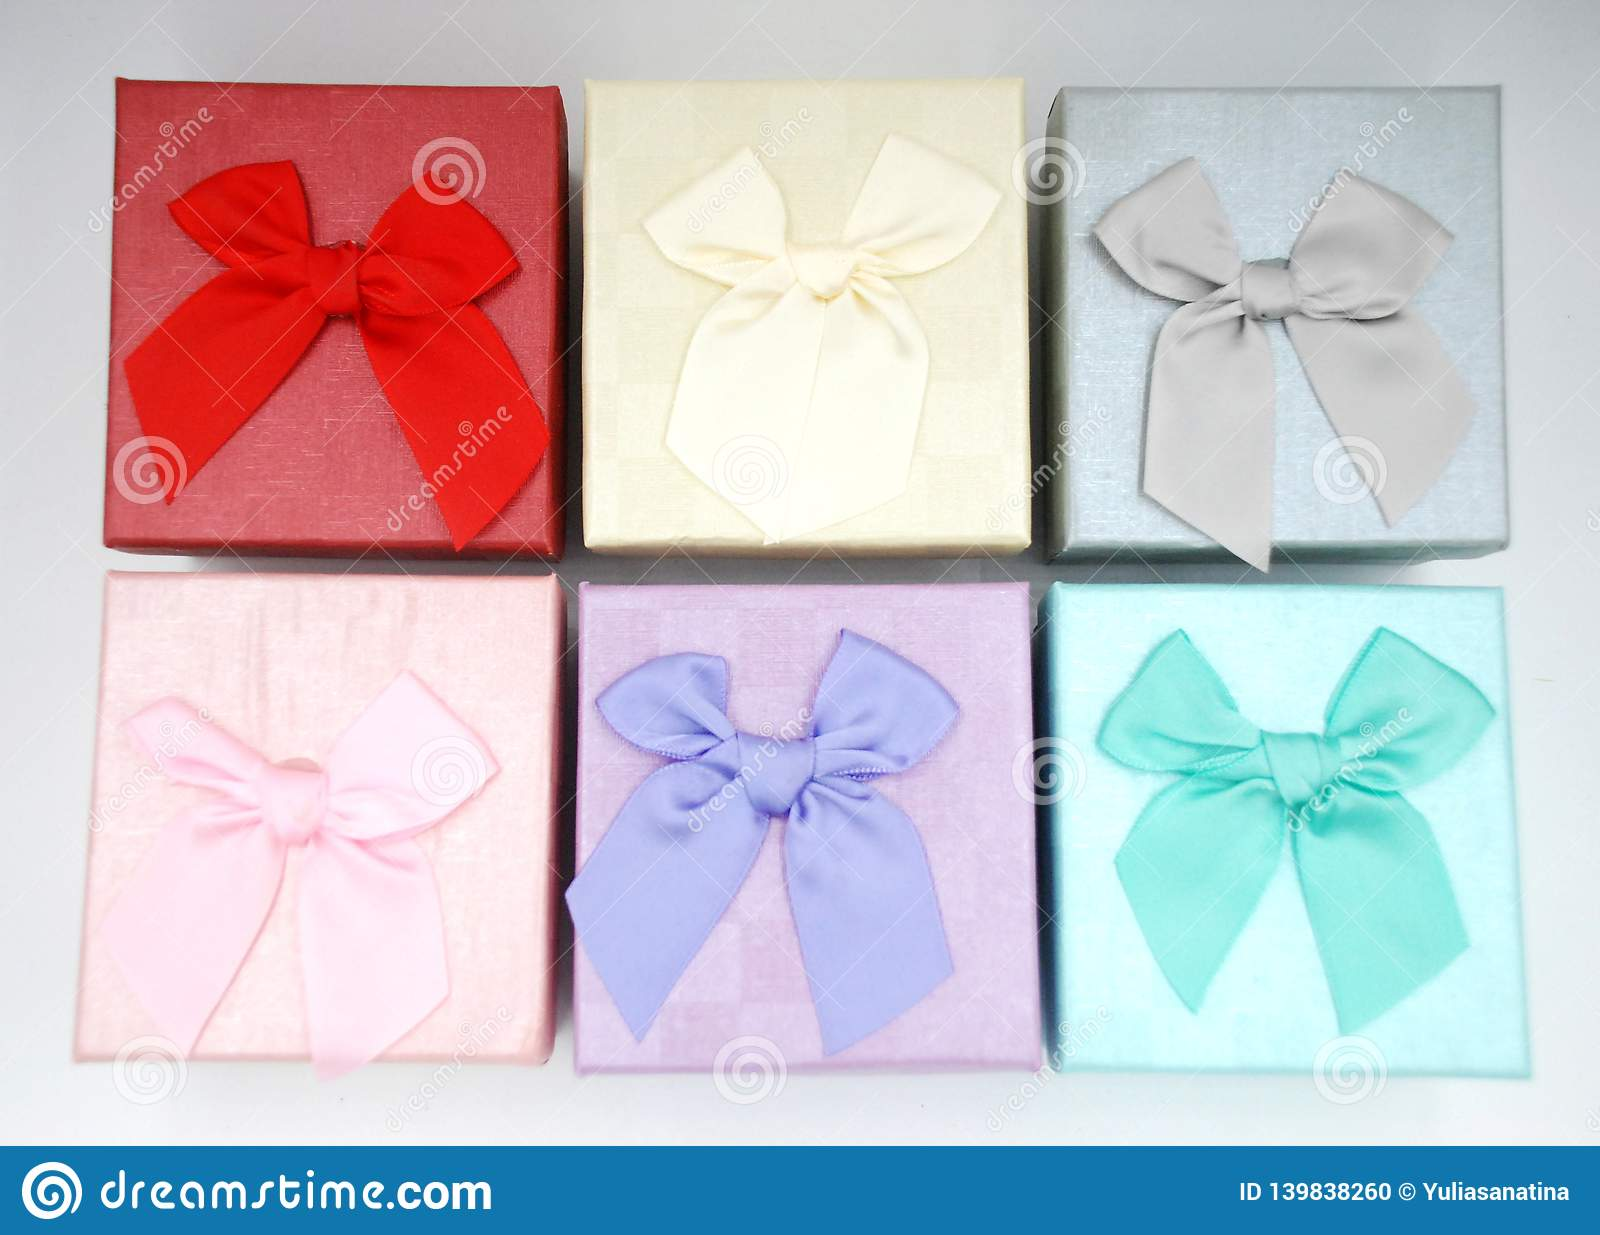 Six gift boxes with the bow tie on the top